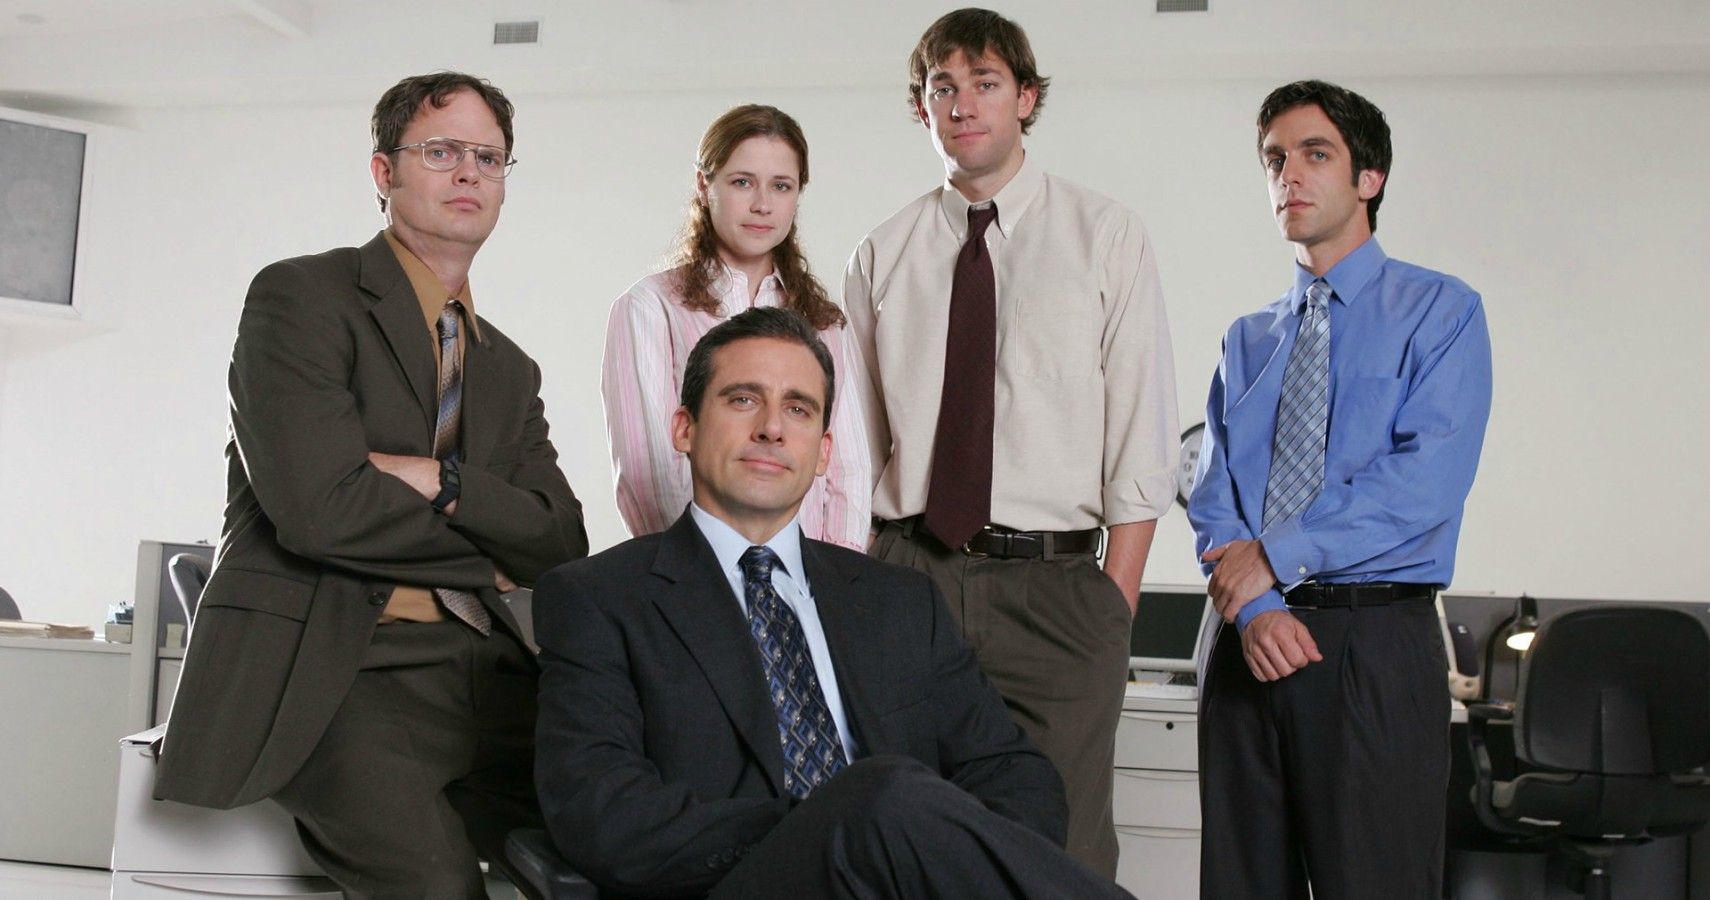 Part of the main cast of the TV show, The Office.